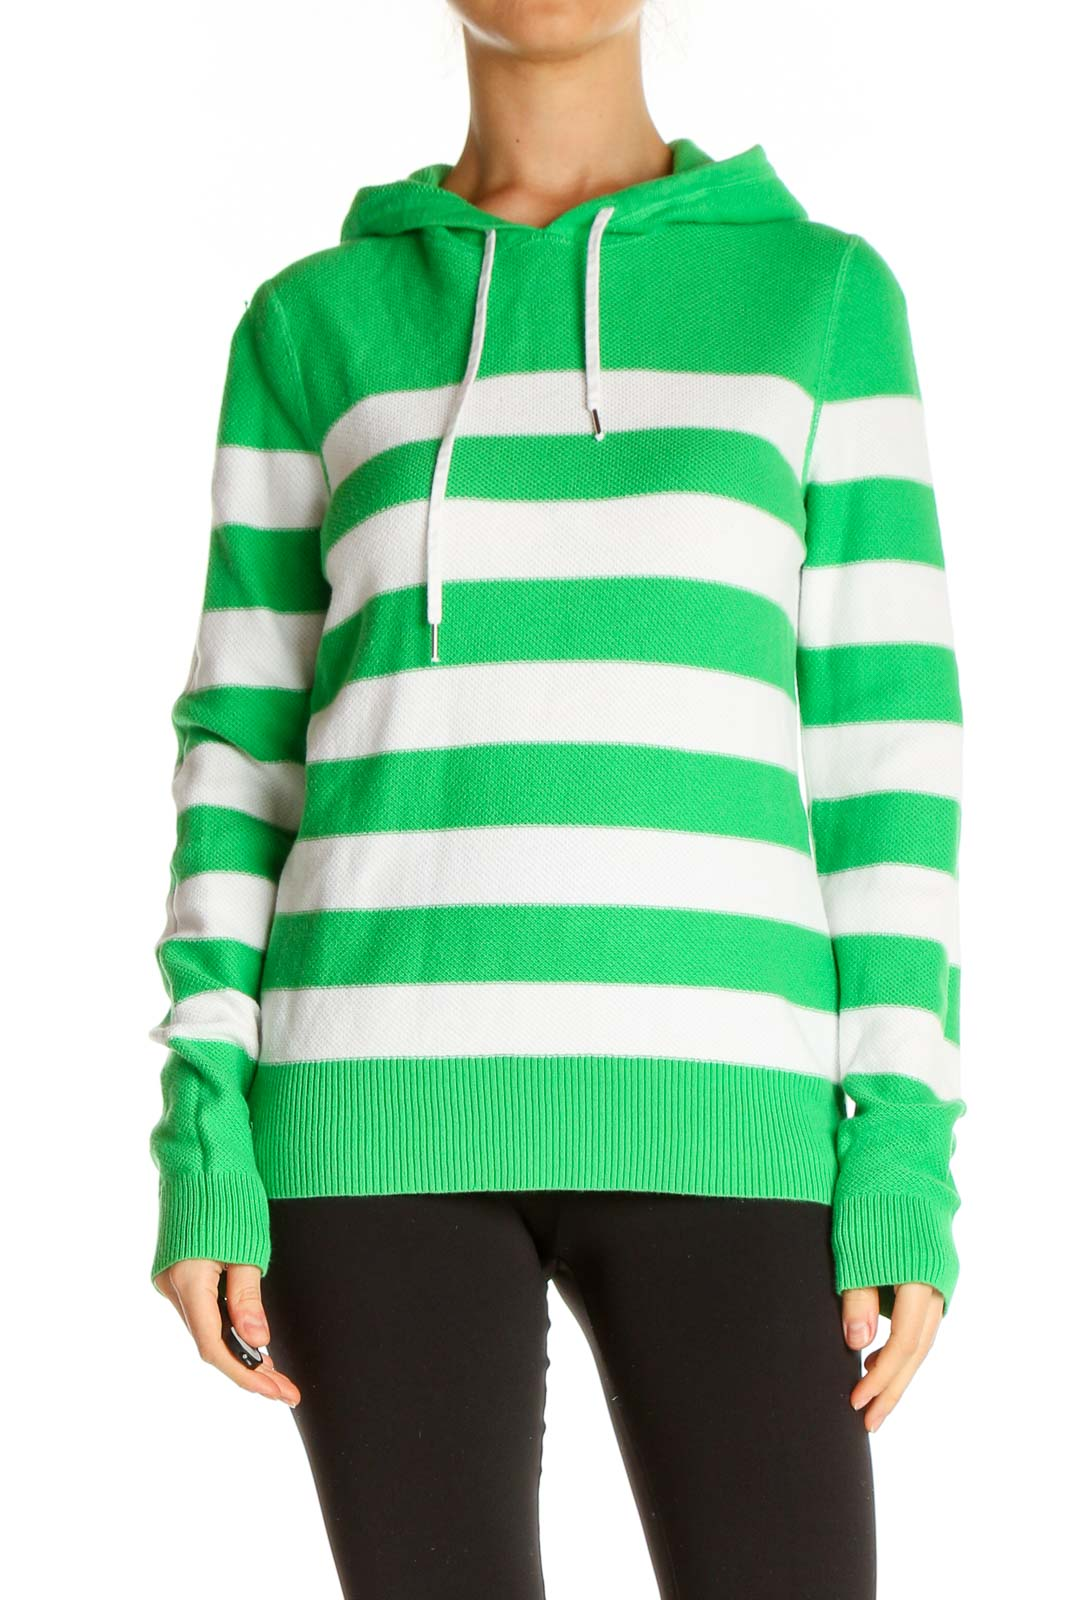 Green Striped All Day Wear Sweater Front